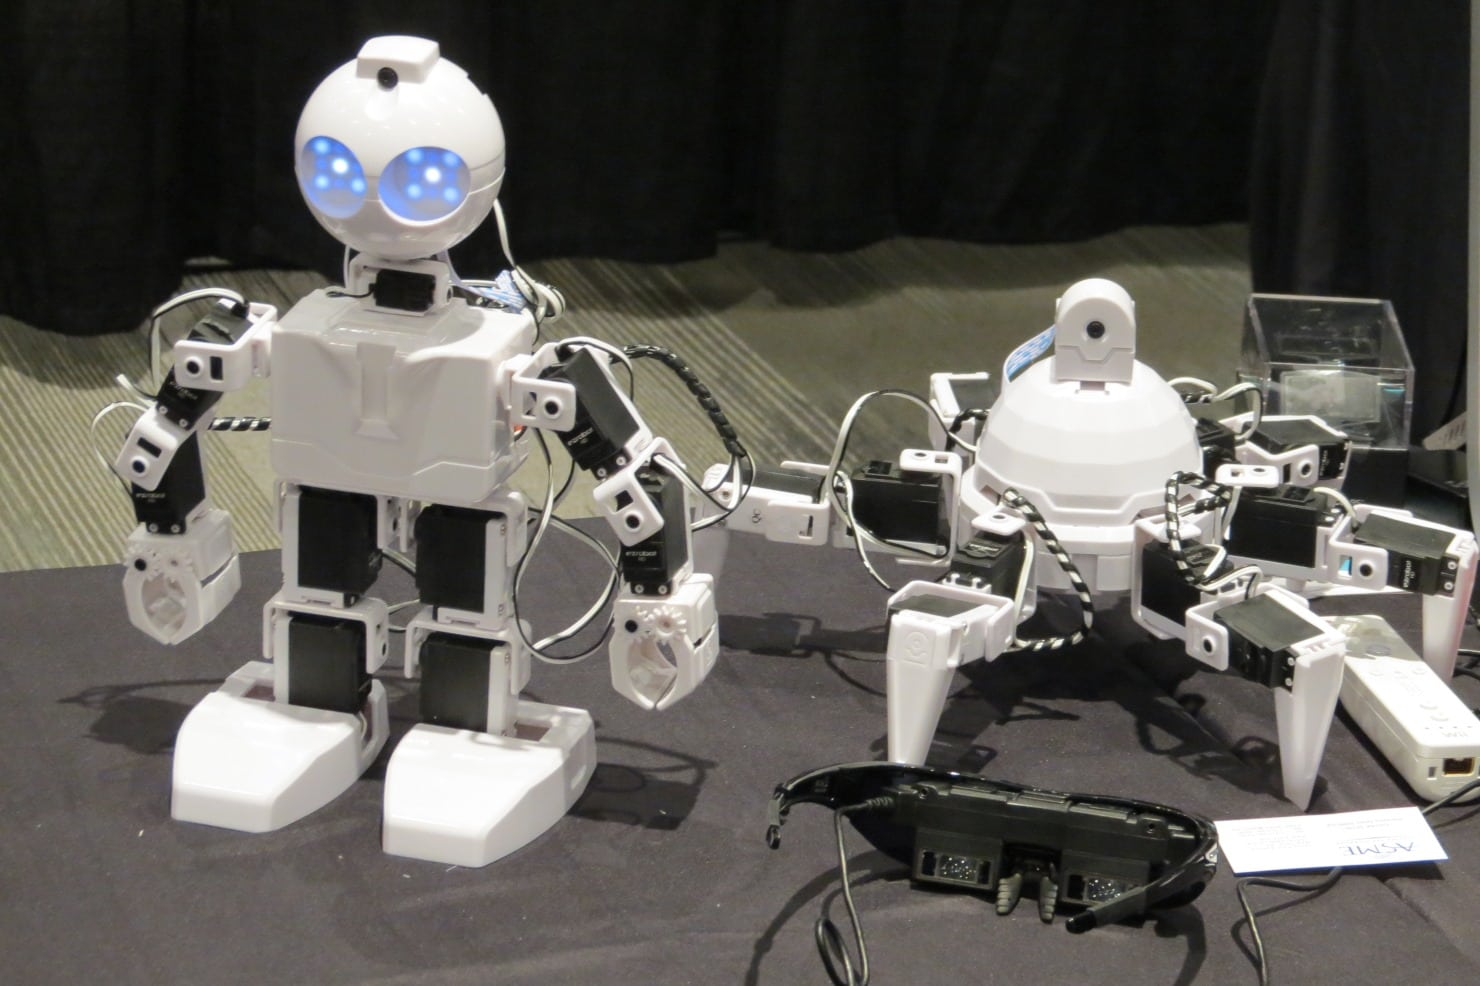 Build-It-Yourself Bots